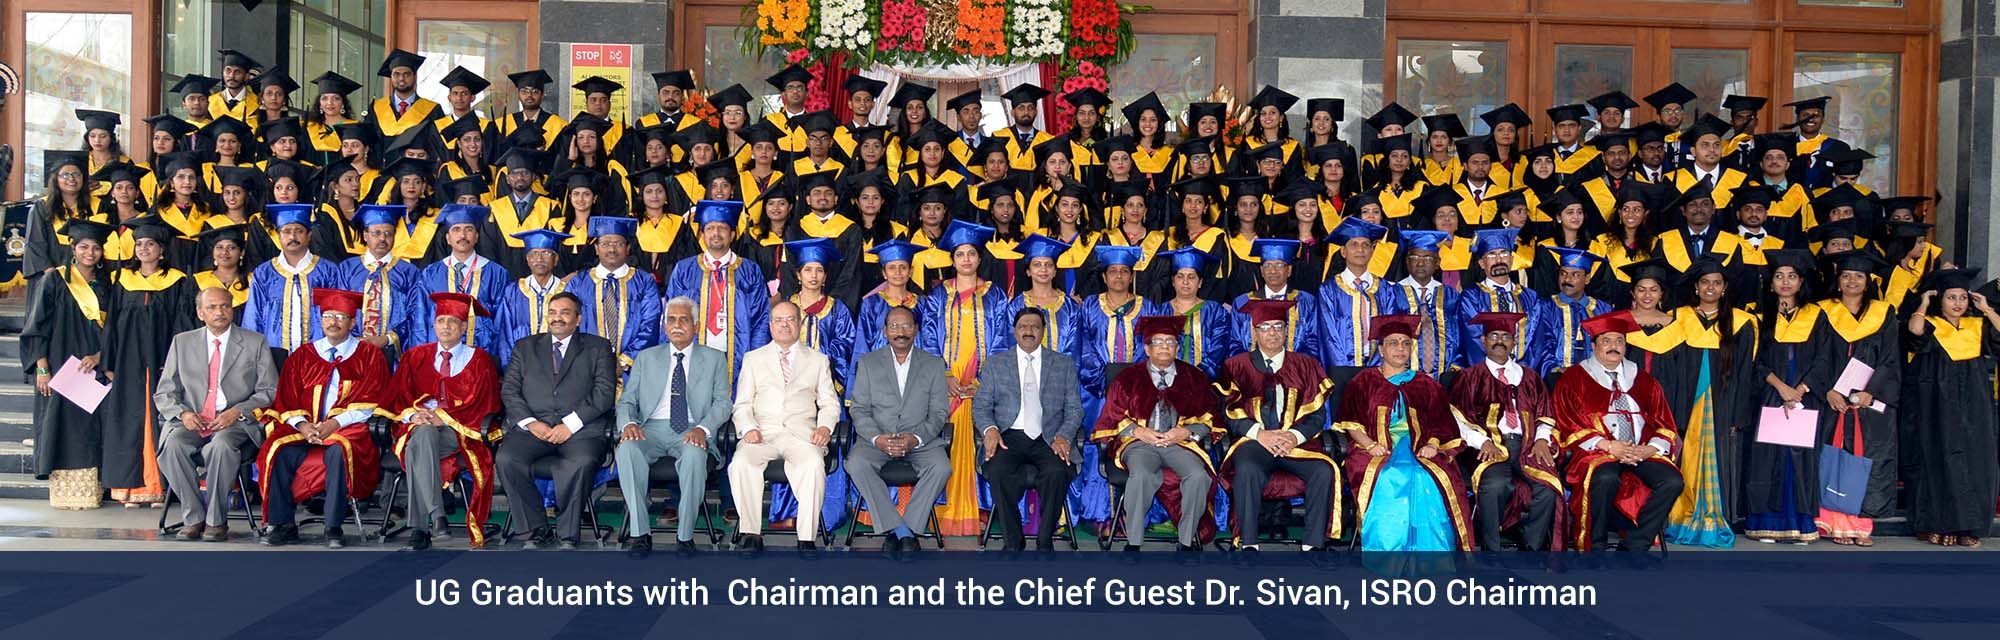 UG-Graduants-with-isro-chairman-1